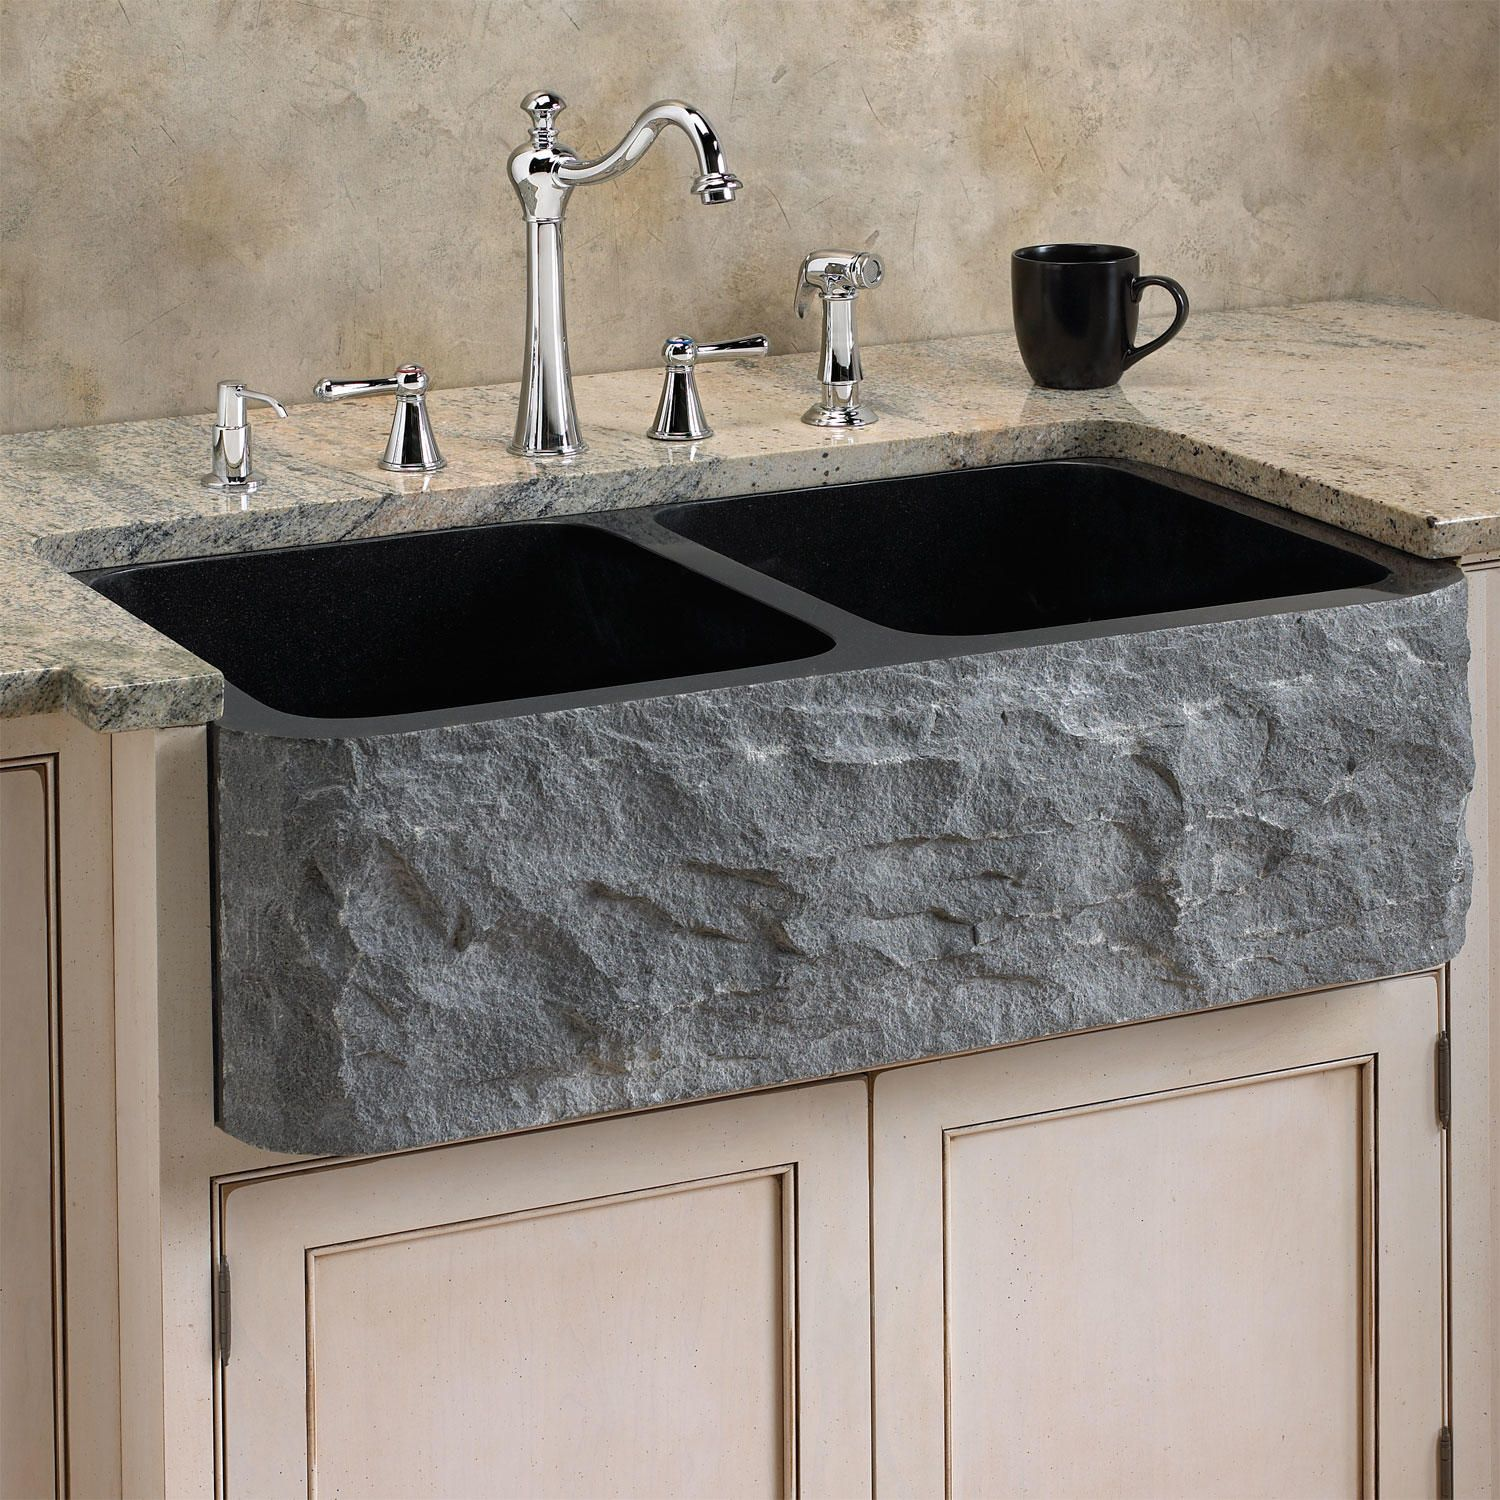 33 Ivy 70 30 Offset Double Bowl Polished Granite Farmhouse Sink